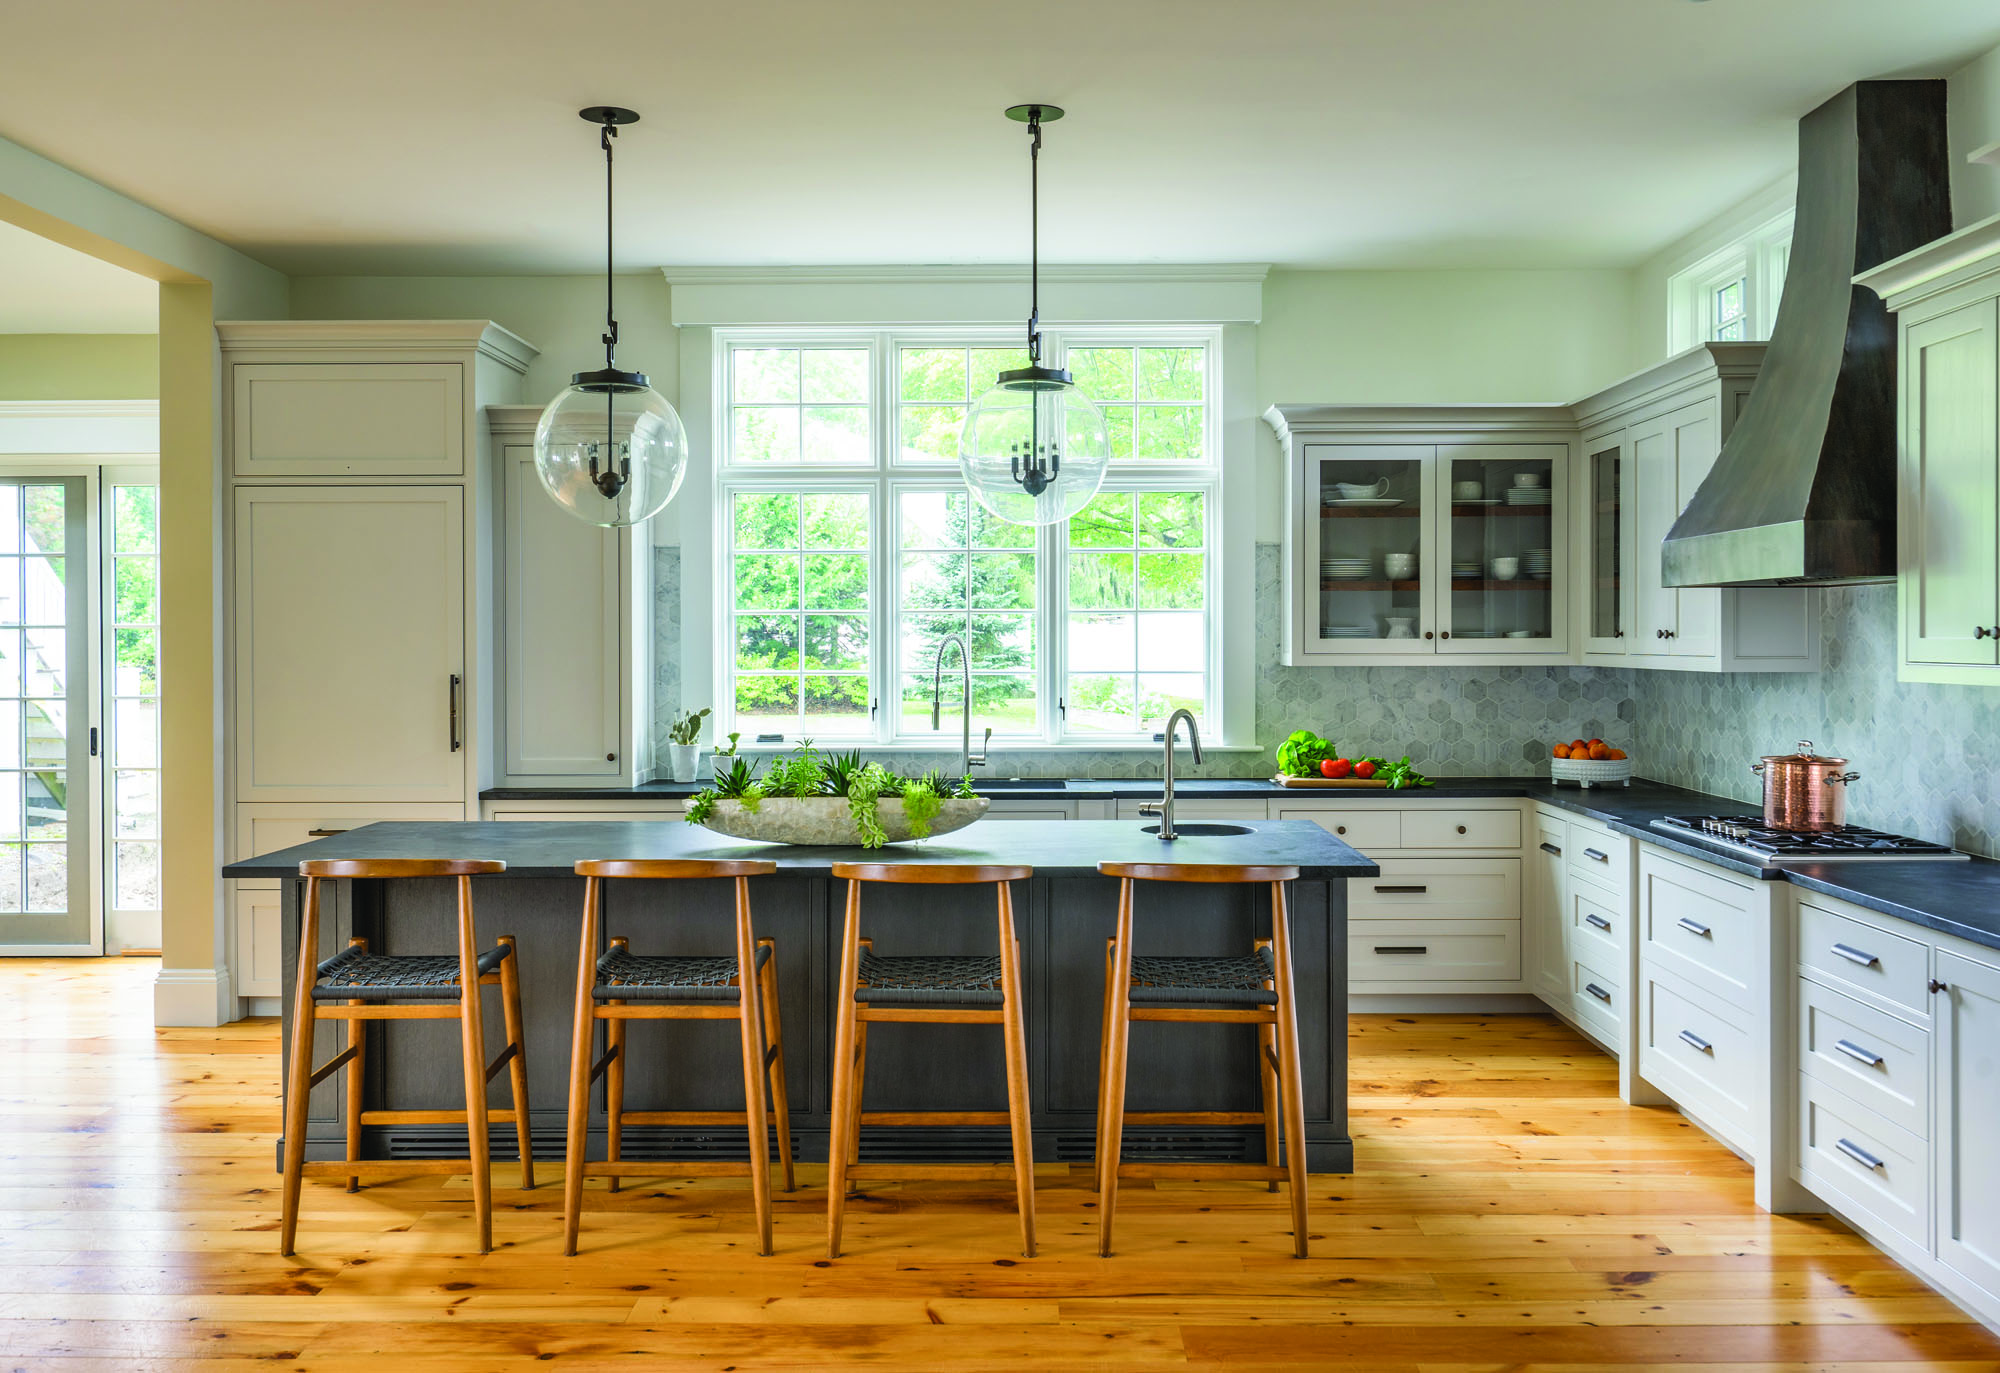 Designing A Functional Beautiful Kitchen Old House Journal